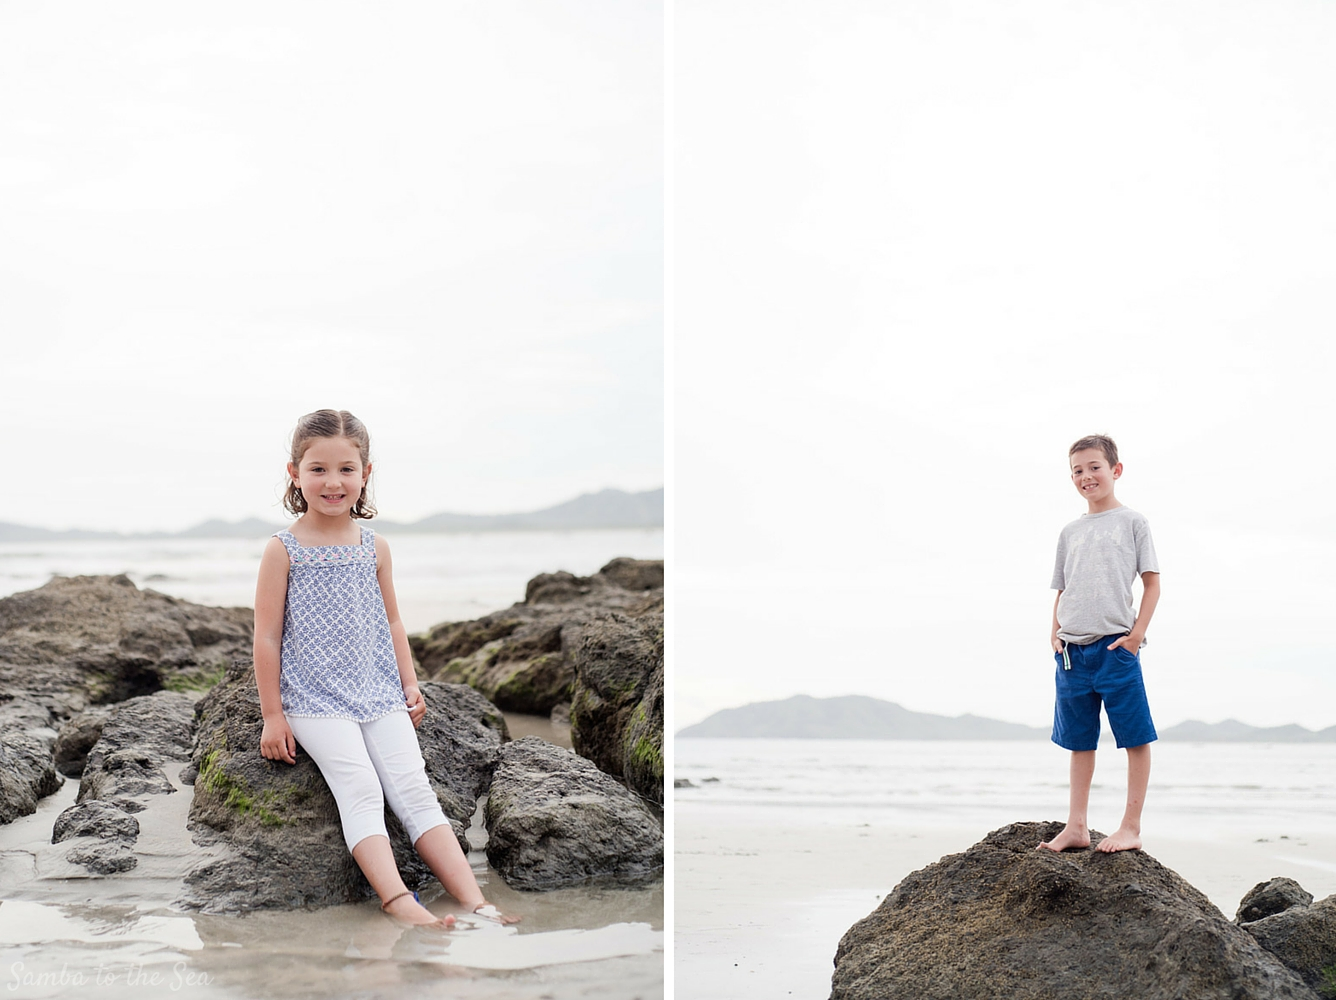 Sibling portraits in Tamarindo, Costa Rica. Photographed by Kristen M. Brown, Samba to the Sea Photography.